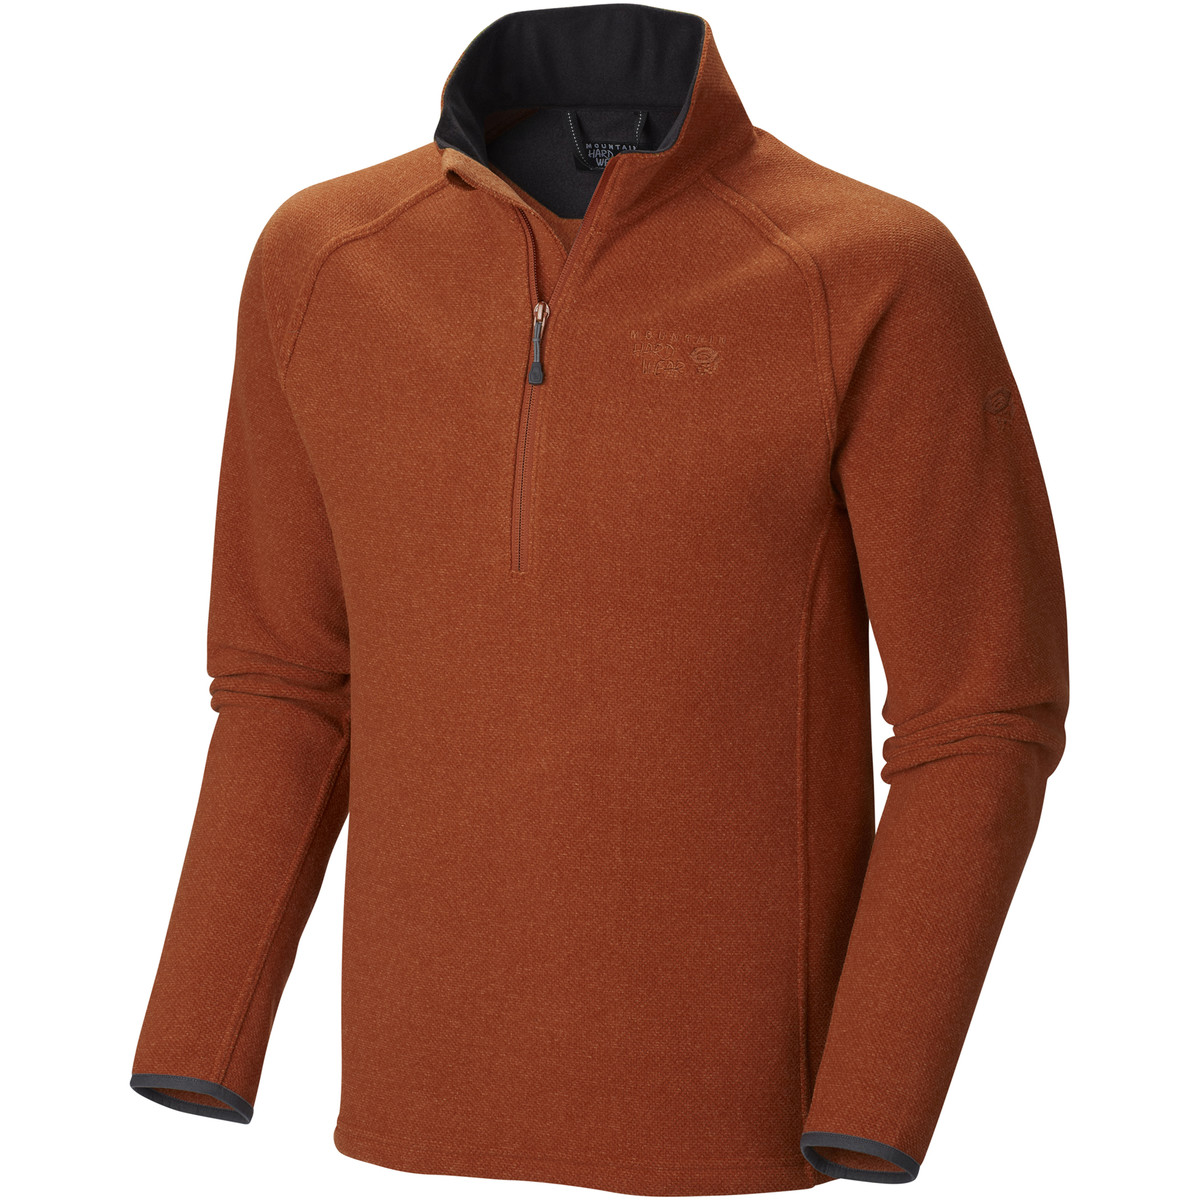 Mountain Hardwear Toasty Tweed 1/4 Zip